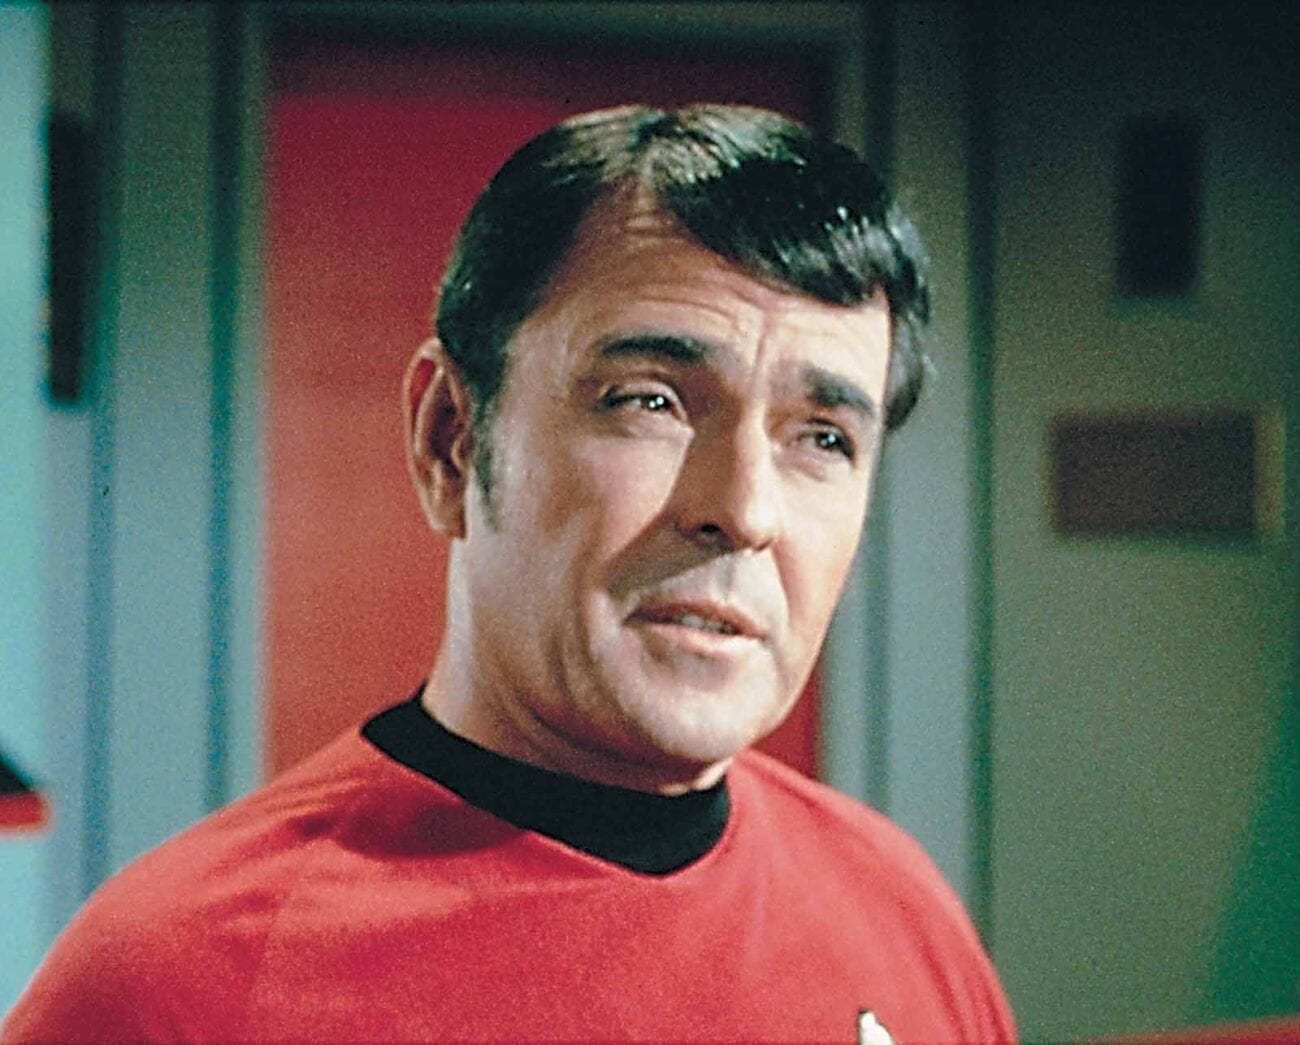 James Doohan may have passed away, but he still got to visit space. Find out how his ashes made it onto the ISS.